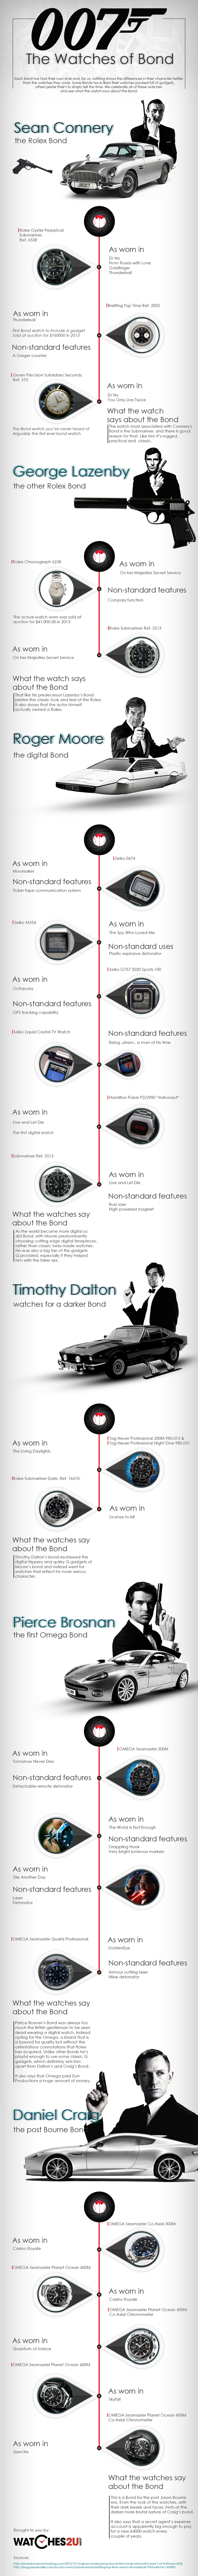 Bondwatches